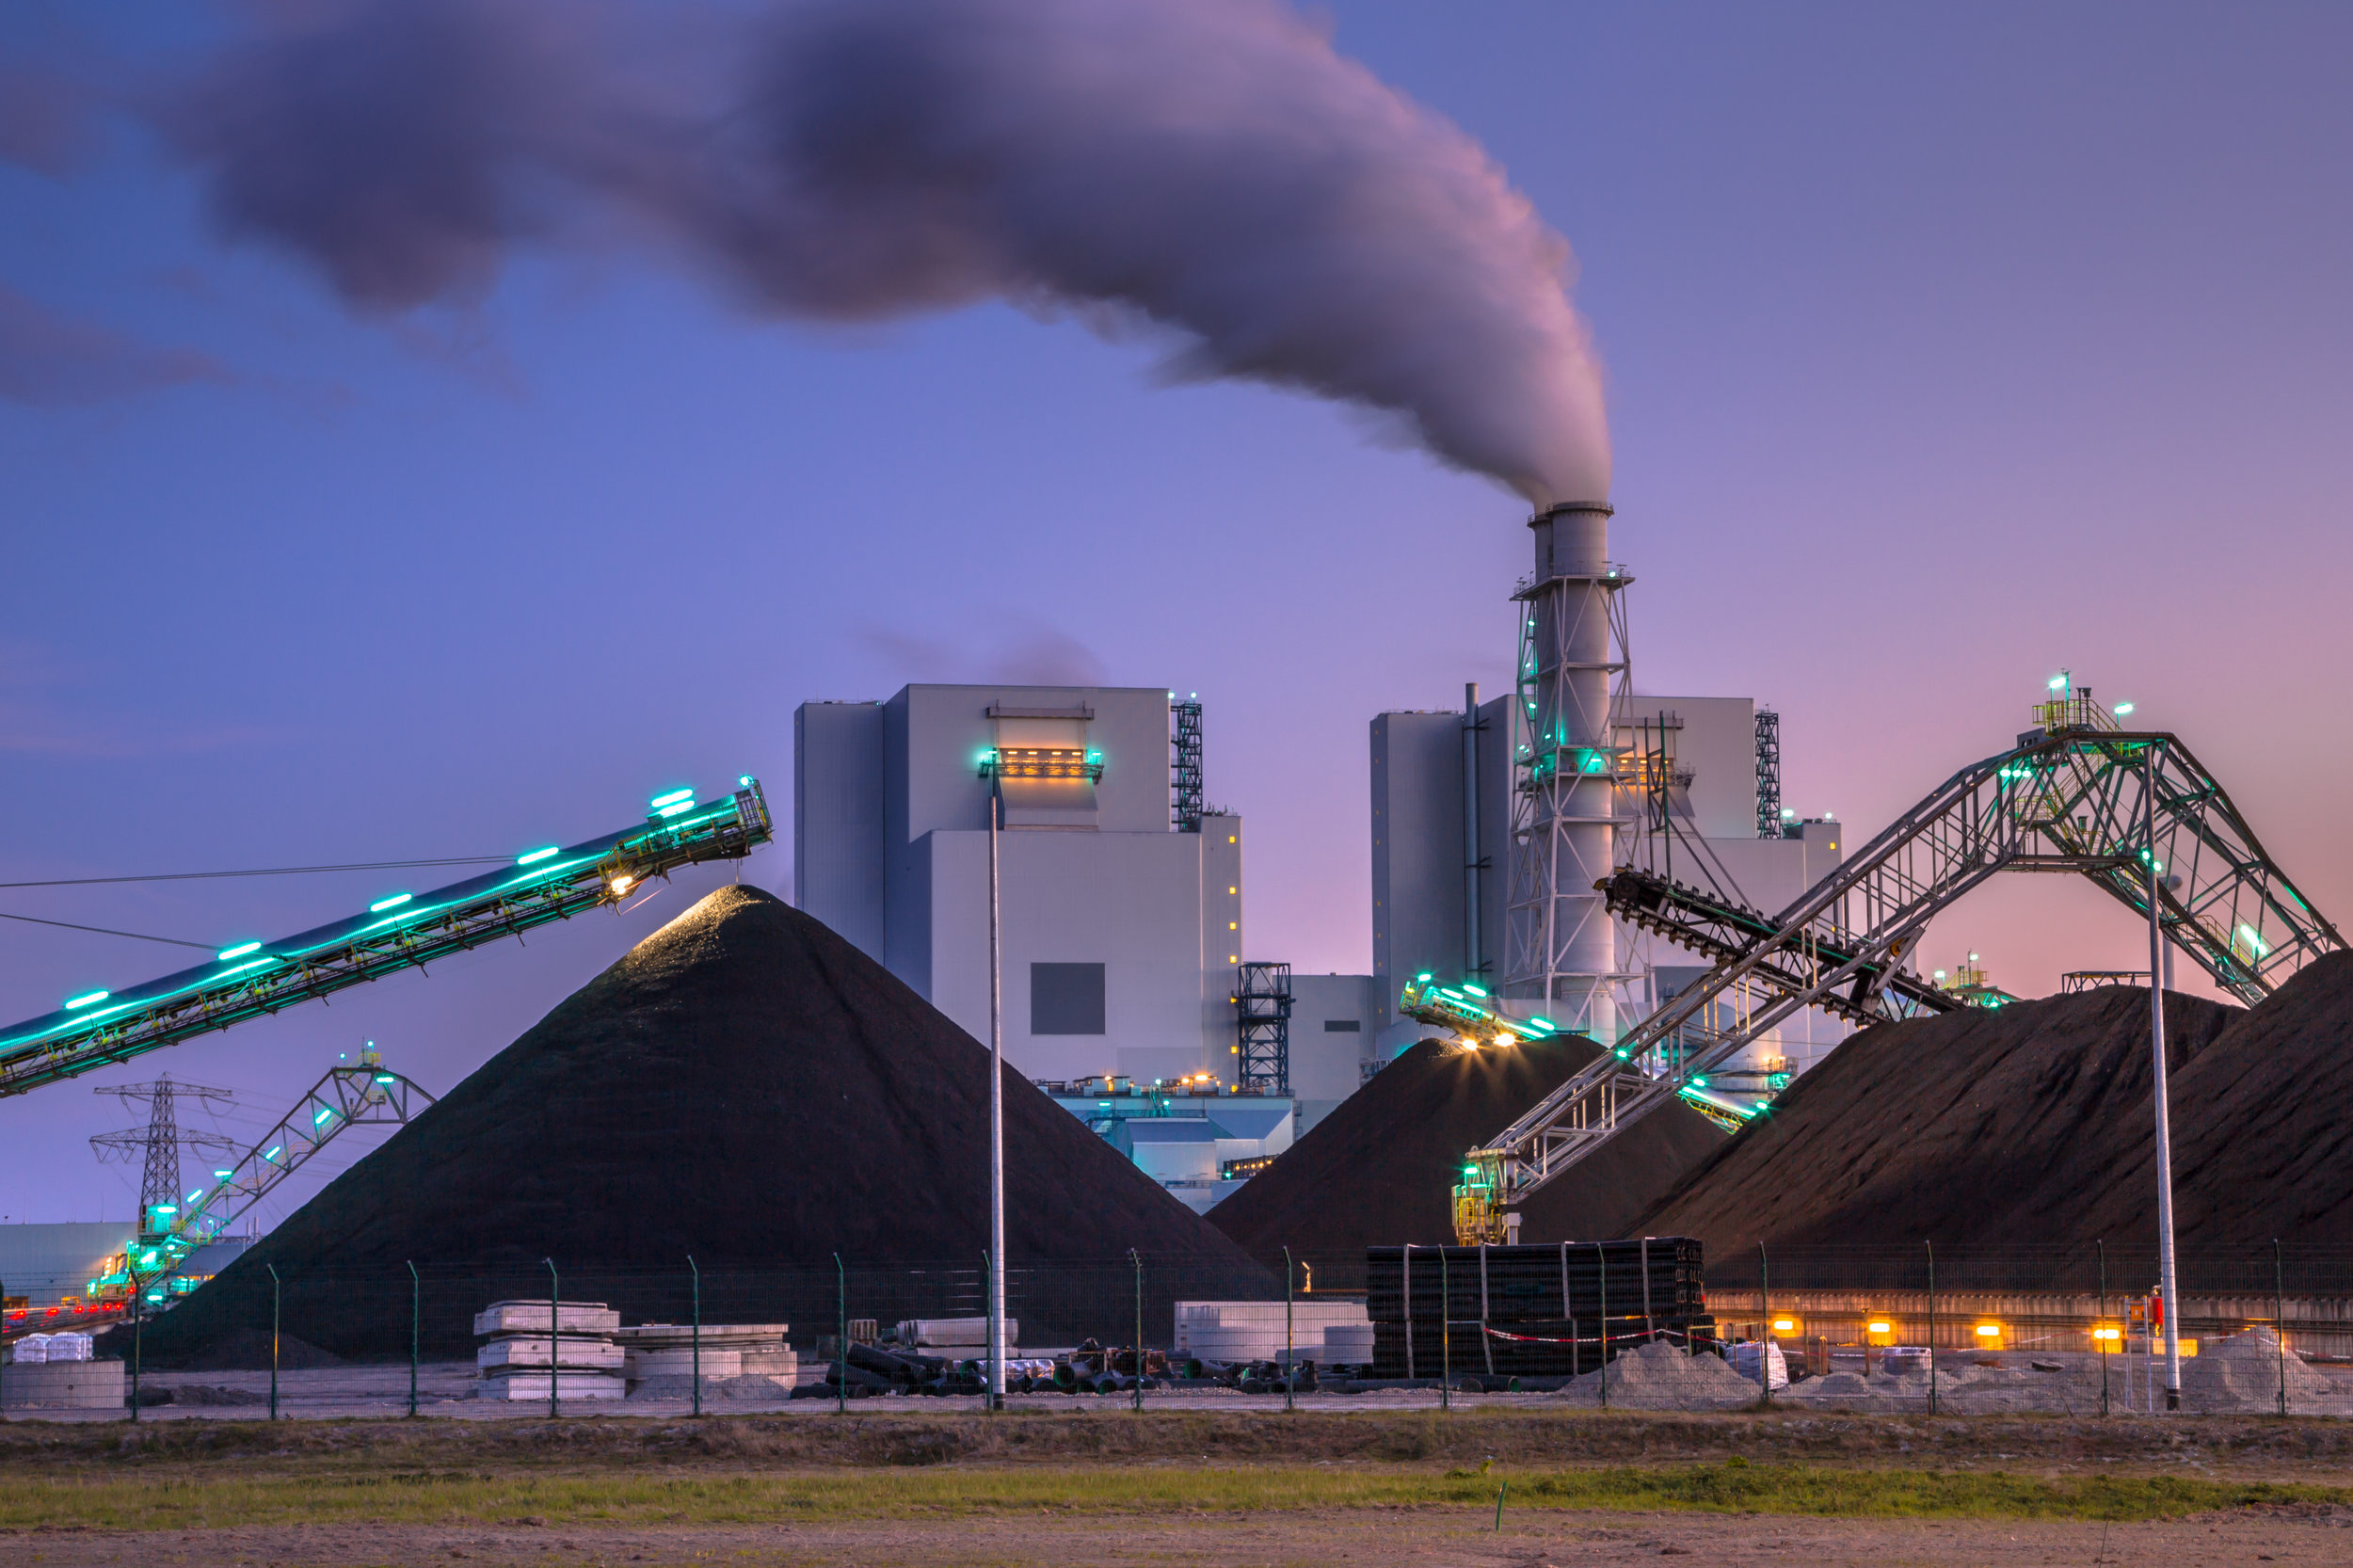 """It's easy to say """"no more coal power plants,"""" but we have to be committed to financing and building the alternatives at the same scale and pace AND to compensate the losers like coal miners and coal-dependent communities."""